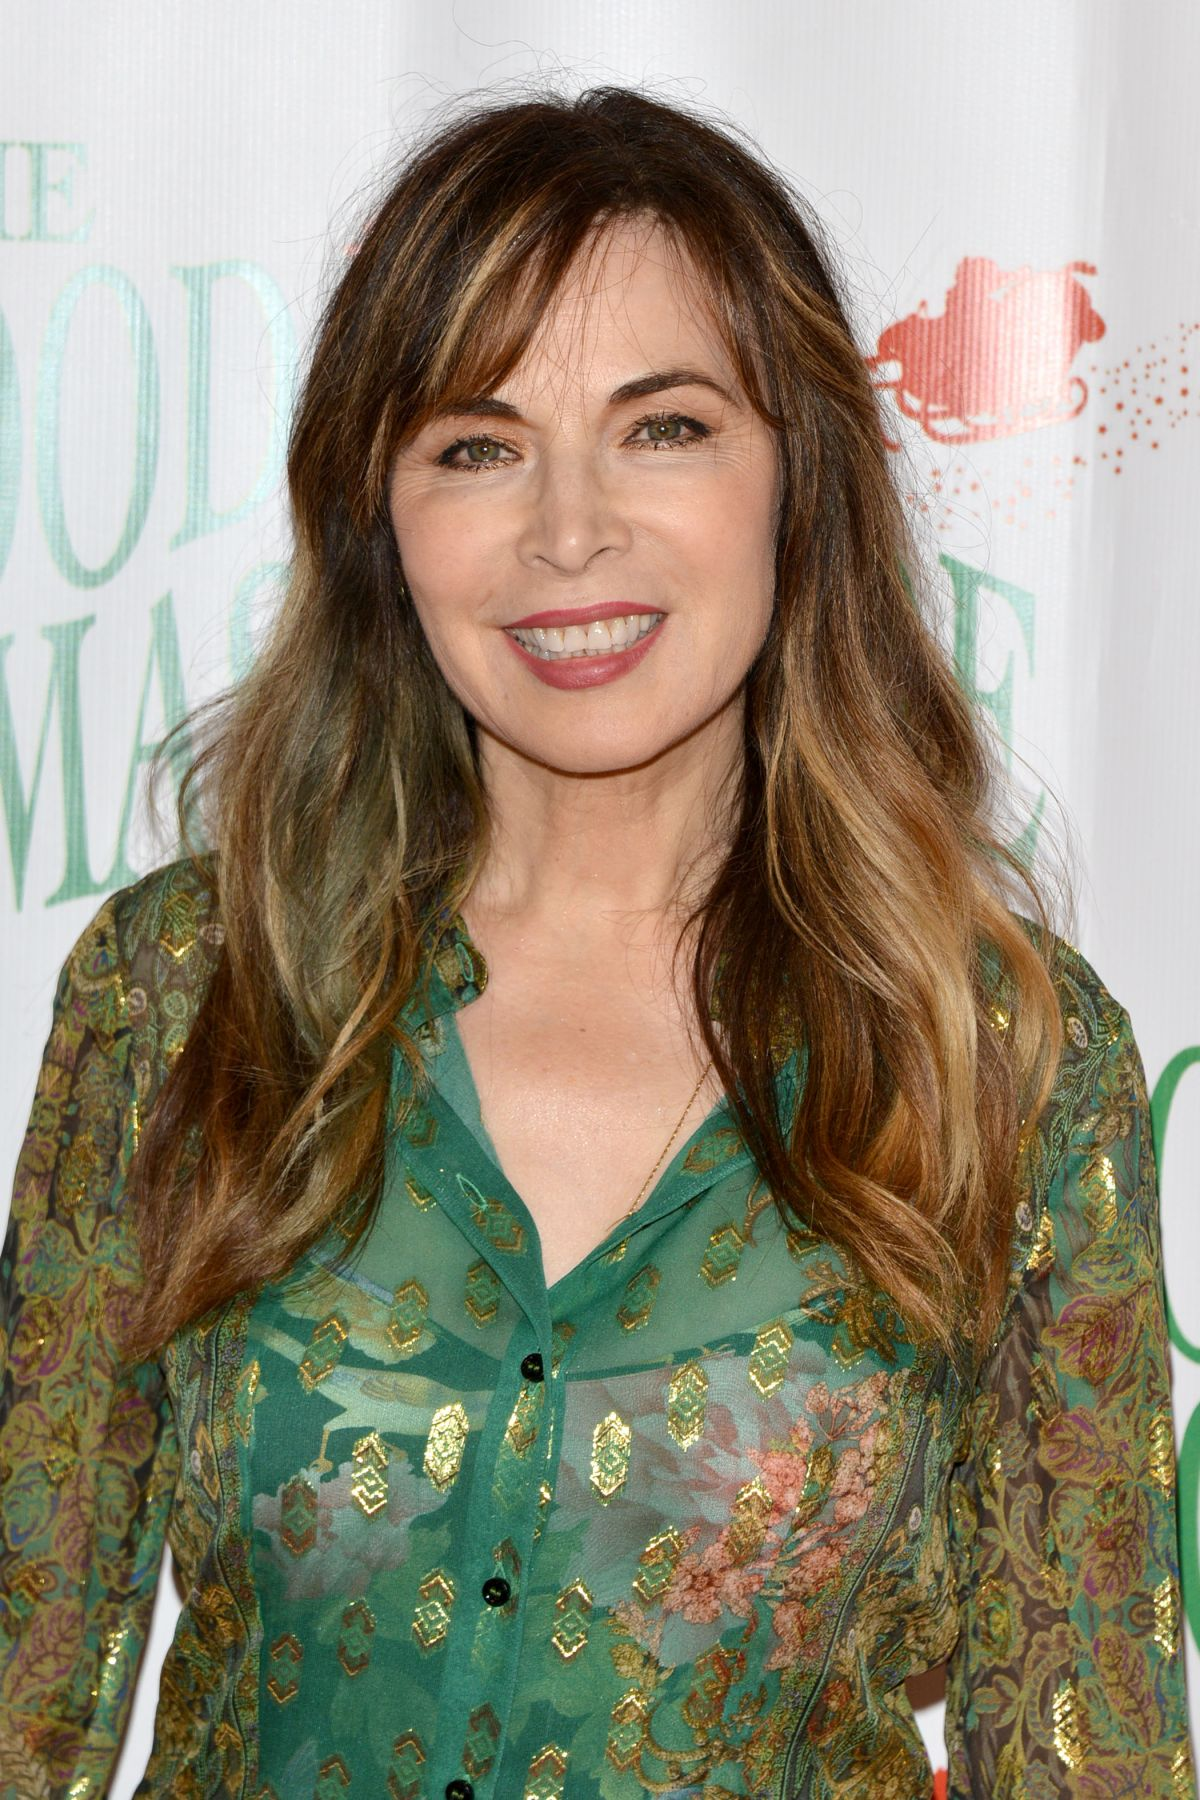 Lauren Koslow At 86th Annual Hollywood Christmas Parade In Los Angeles 11 26 2017 Hawtcelebs Elle obtient son premier rôle dans le soap les feux de l'amour, puis joue dans beaucoup de soap operas. lauren koslow at 86th annual hollywood